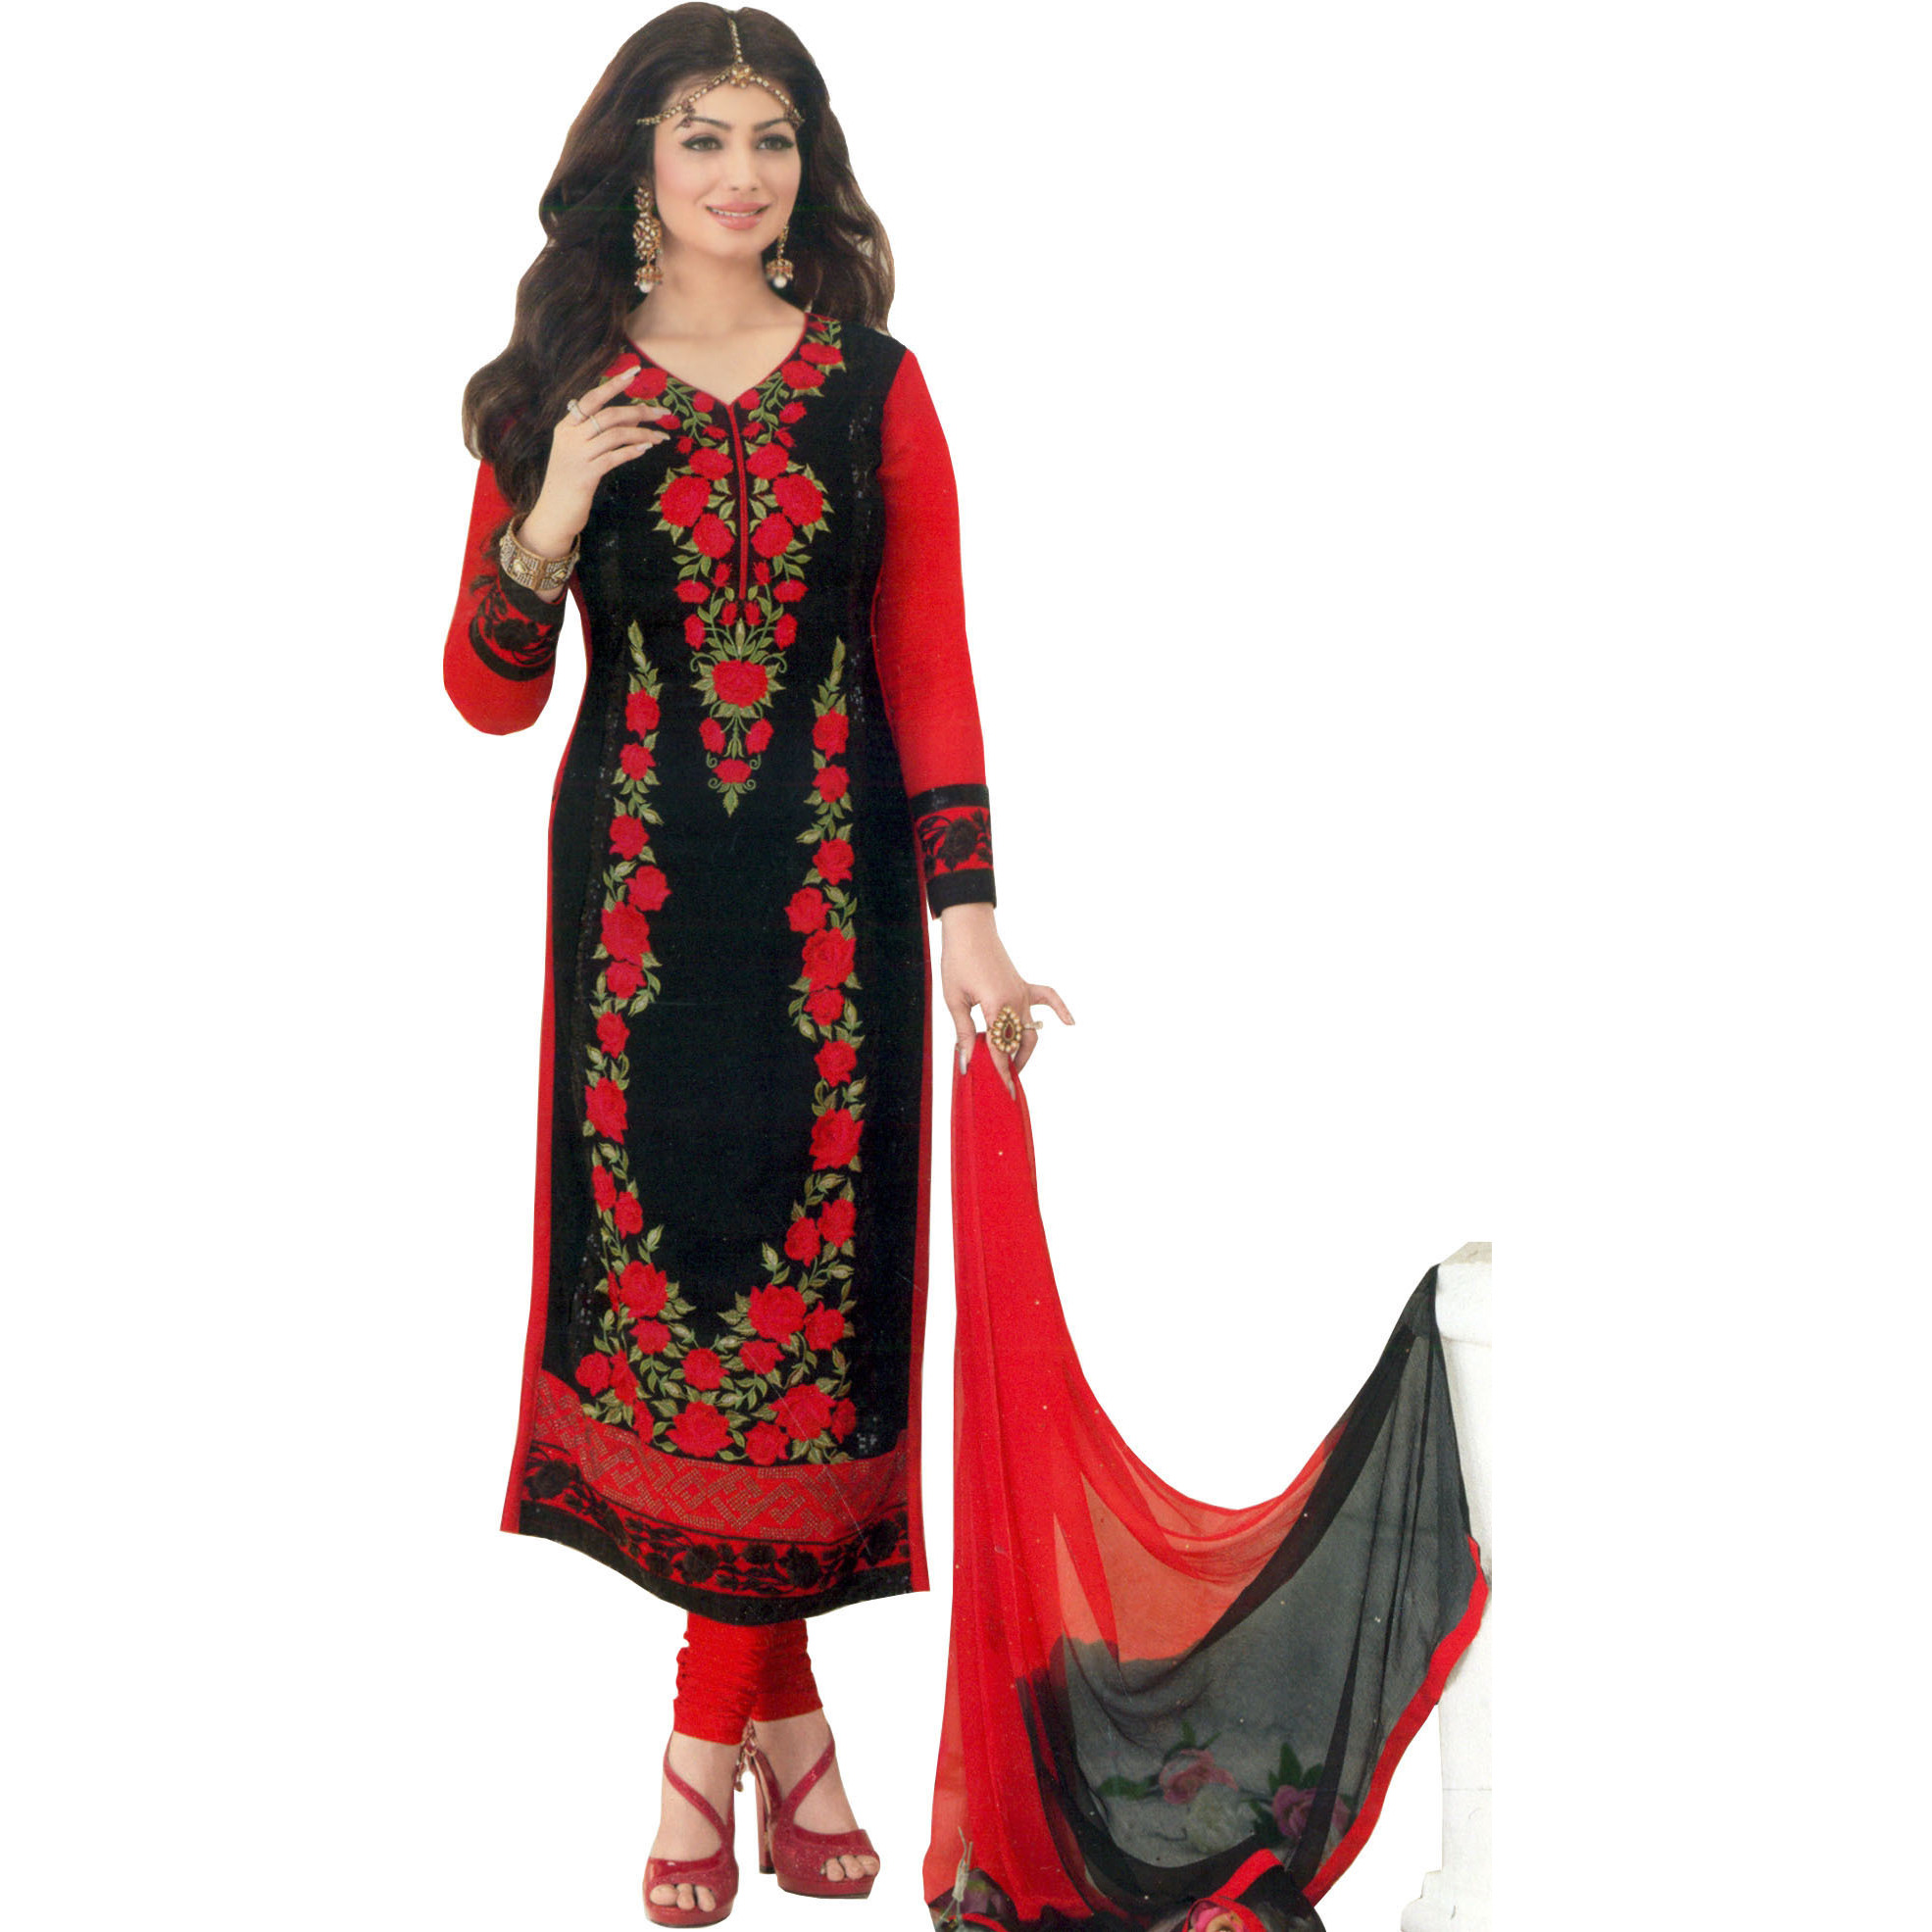 Black and Red Ayesha Long Choodidaar Kameez Suit with Embroidered Roses and Black Sequins